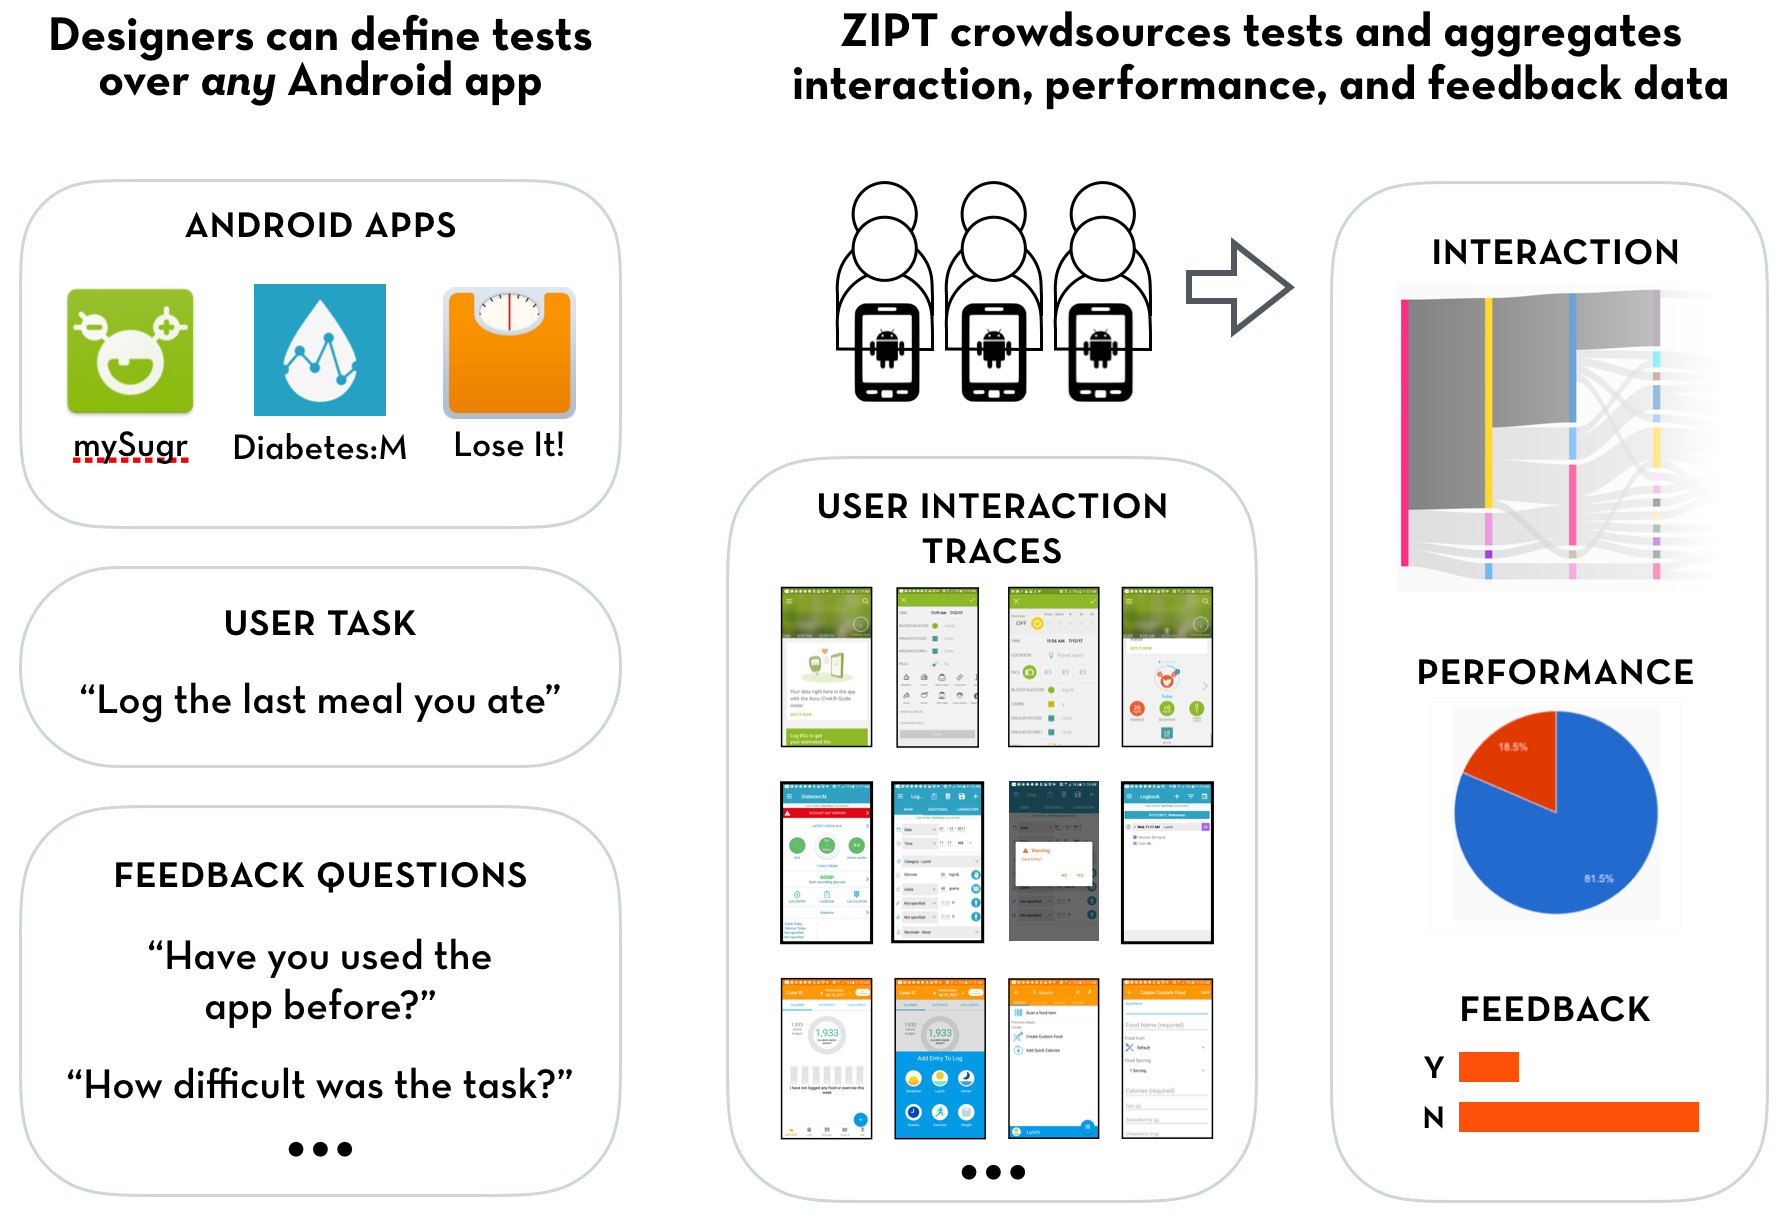 Designers can define tests over any Android app. ZIPT crowdsources tests and aggregates interaction, performance, and feedback data.